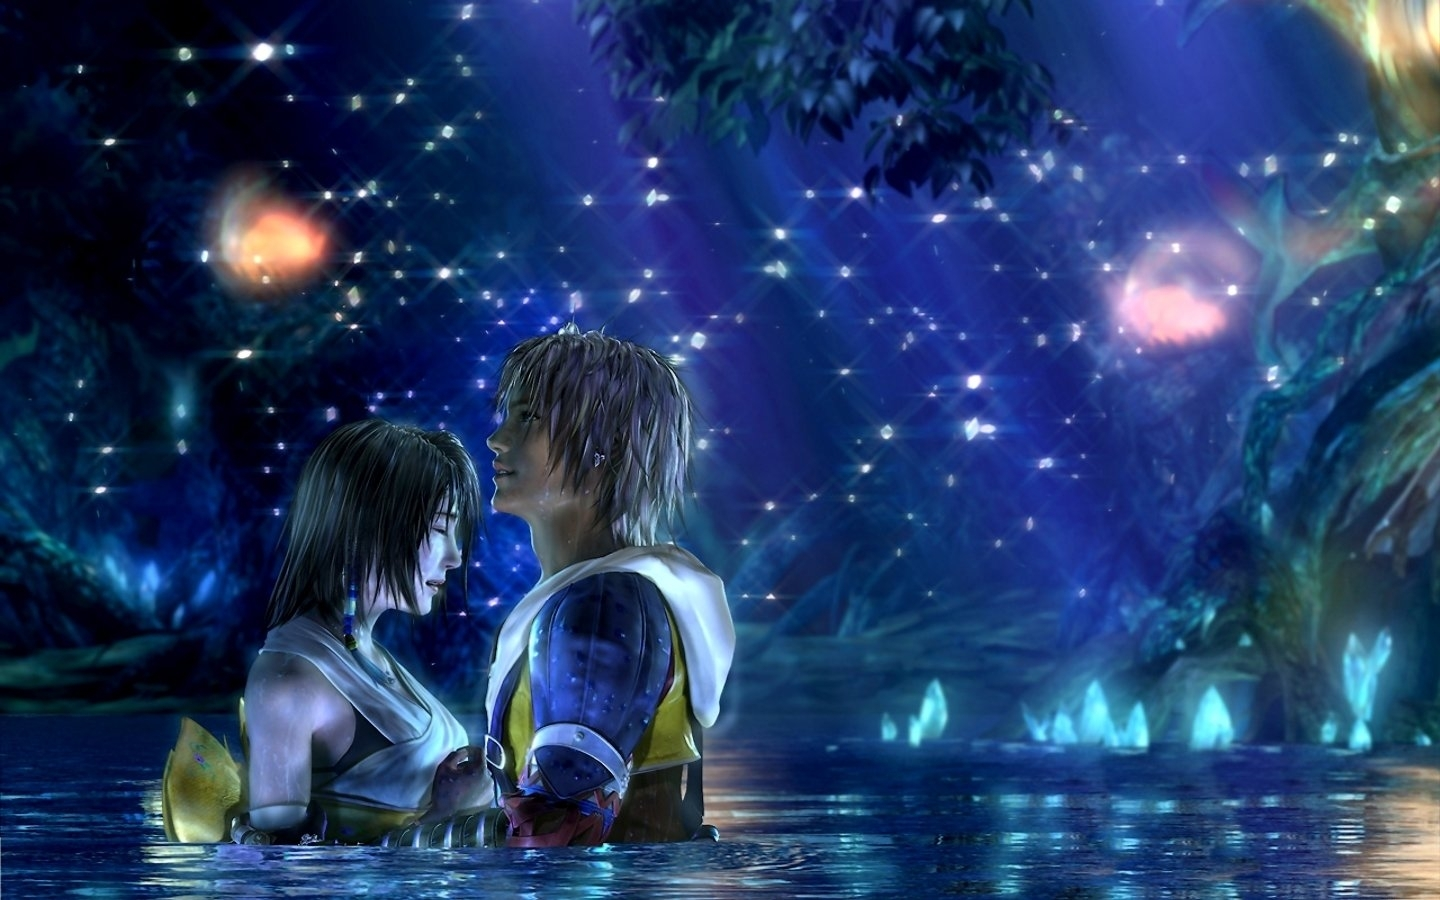 40 final fantasy x hd wallpapers | background images - wallpaper abyss